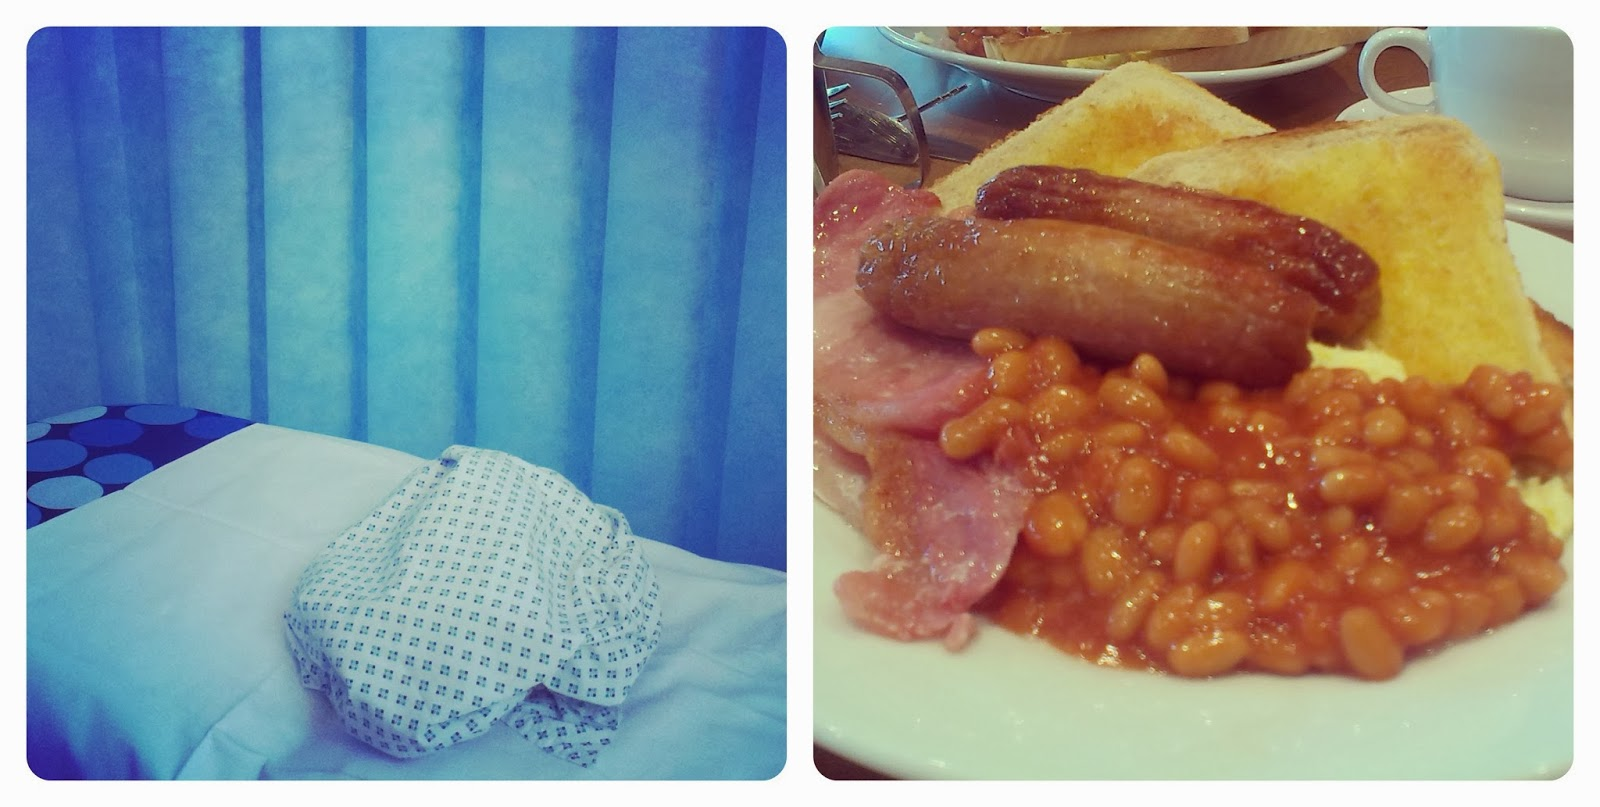 Hospital bed - Fried breakfast